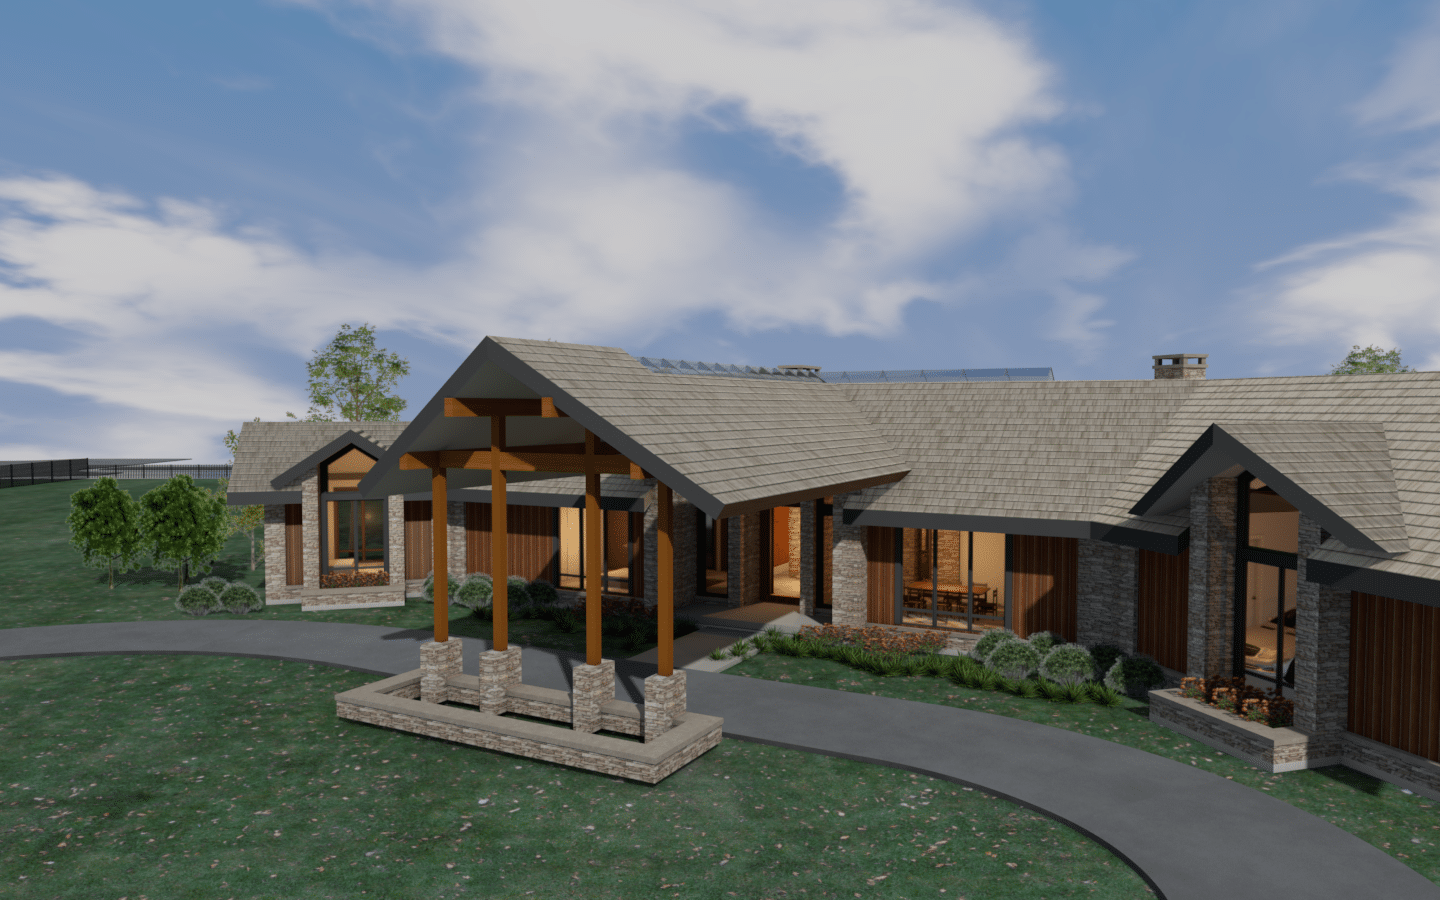 elevated front rendering